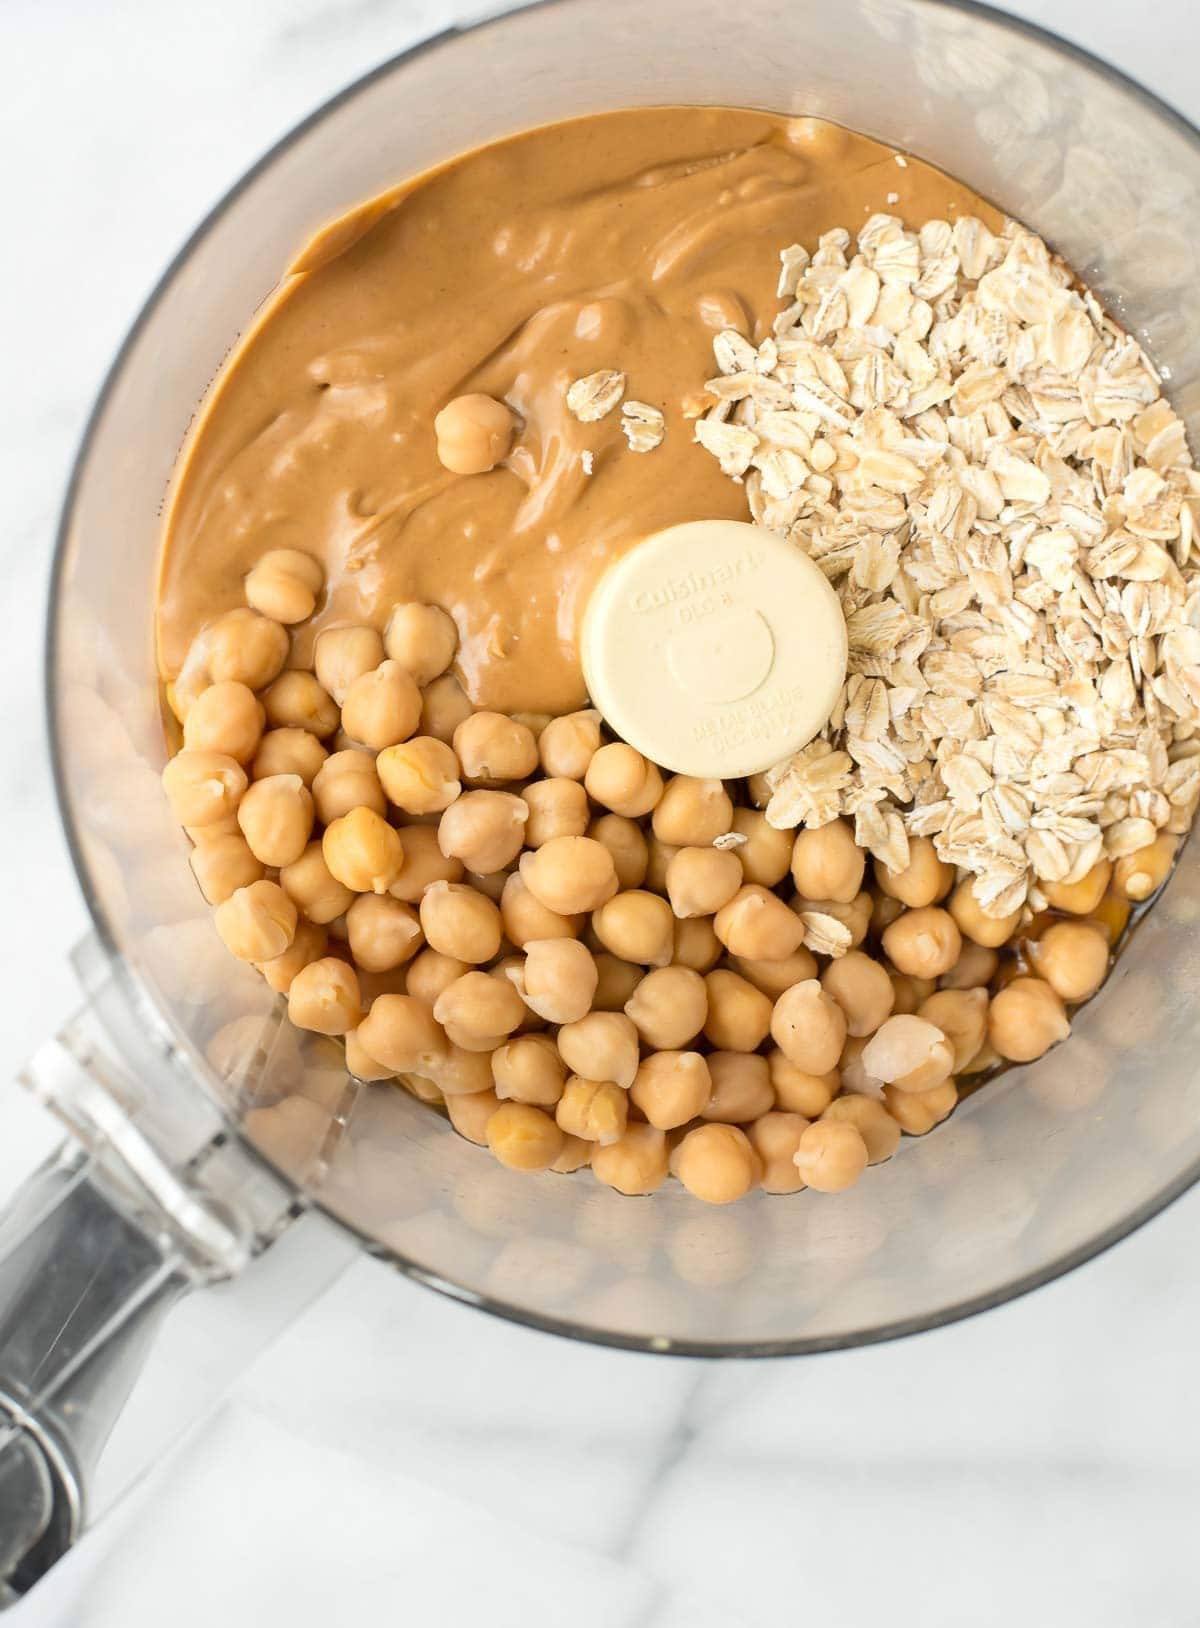 chickpeas, oats and peanut butter in a food processor